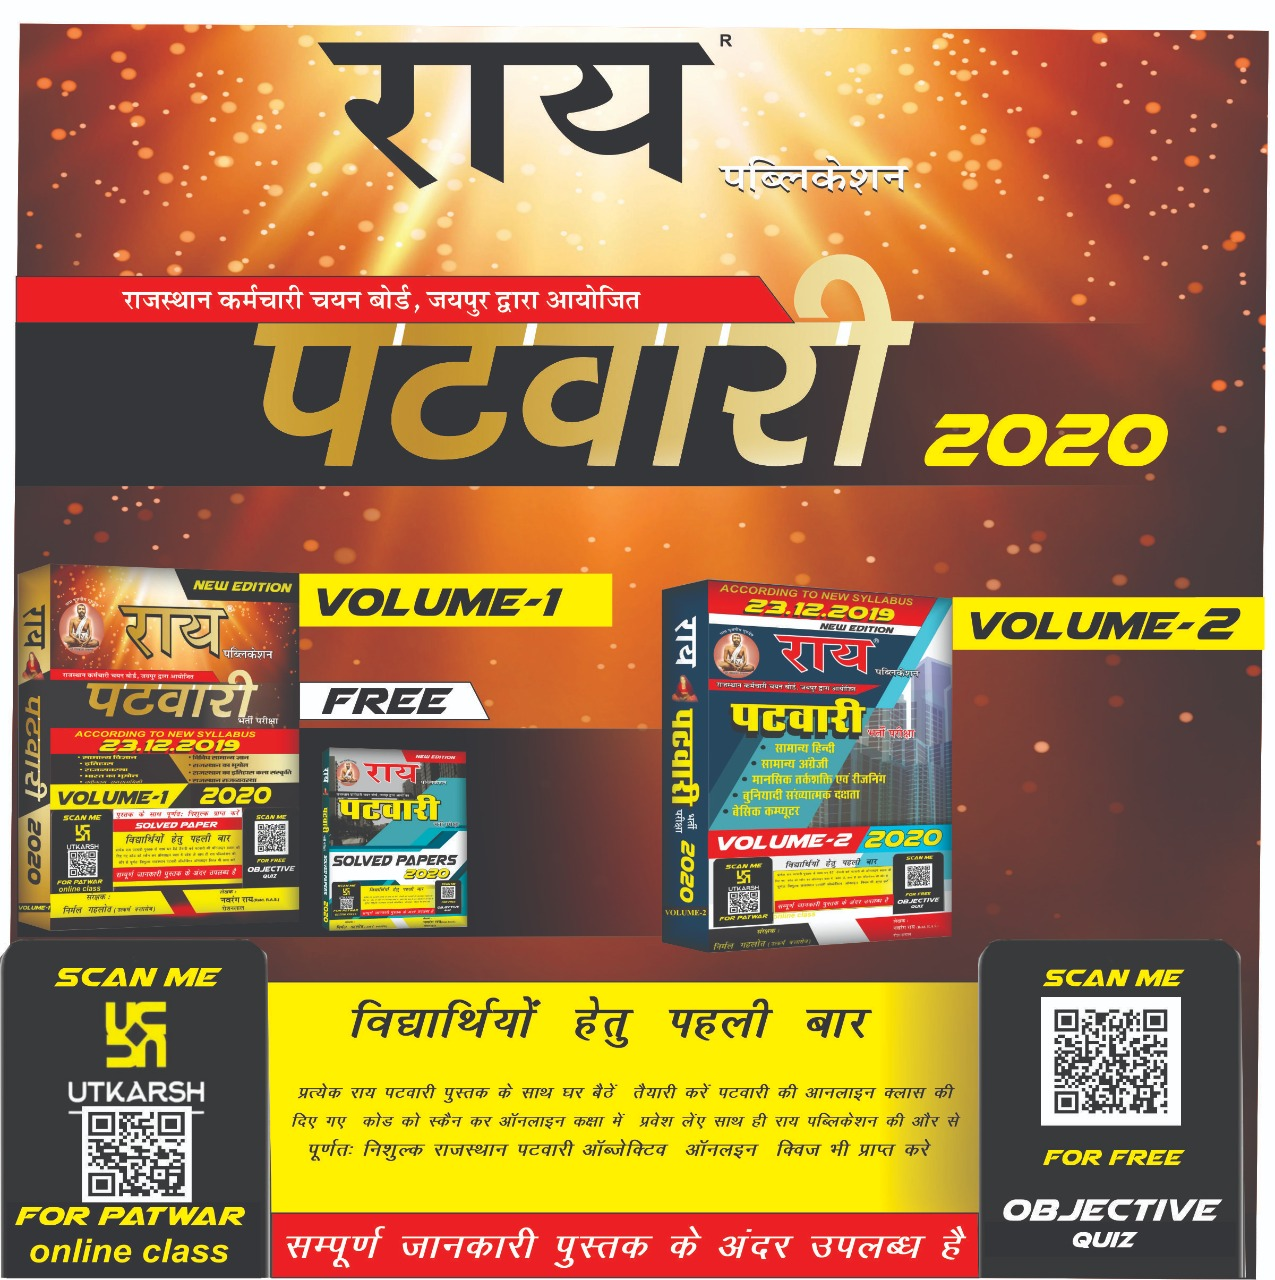 Rajasthan Patwari 2020 Complete Super Combo  ( Set of 3 Books - Vol 1 , Vol 2 , solved papers ) on Latest Syllabus and free Online Objective Test ( Patwari 2020 )(Complete Syllabus and Exam Pattern)